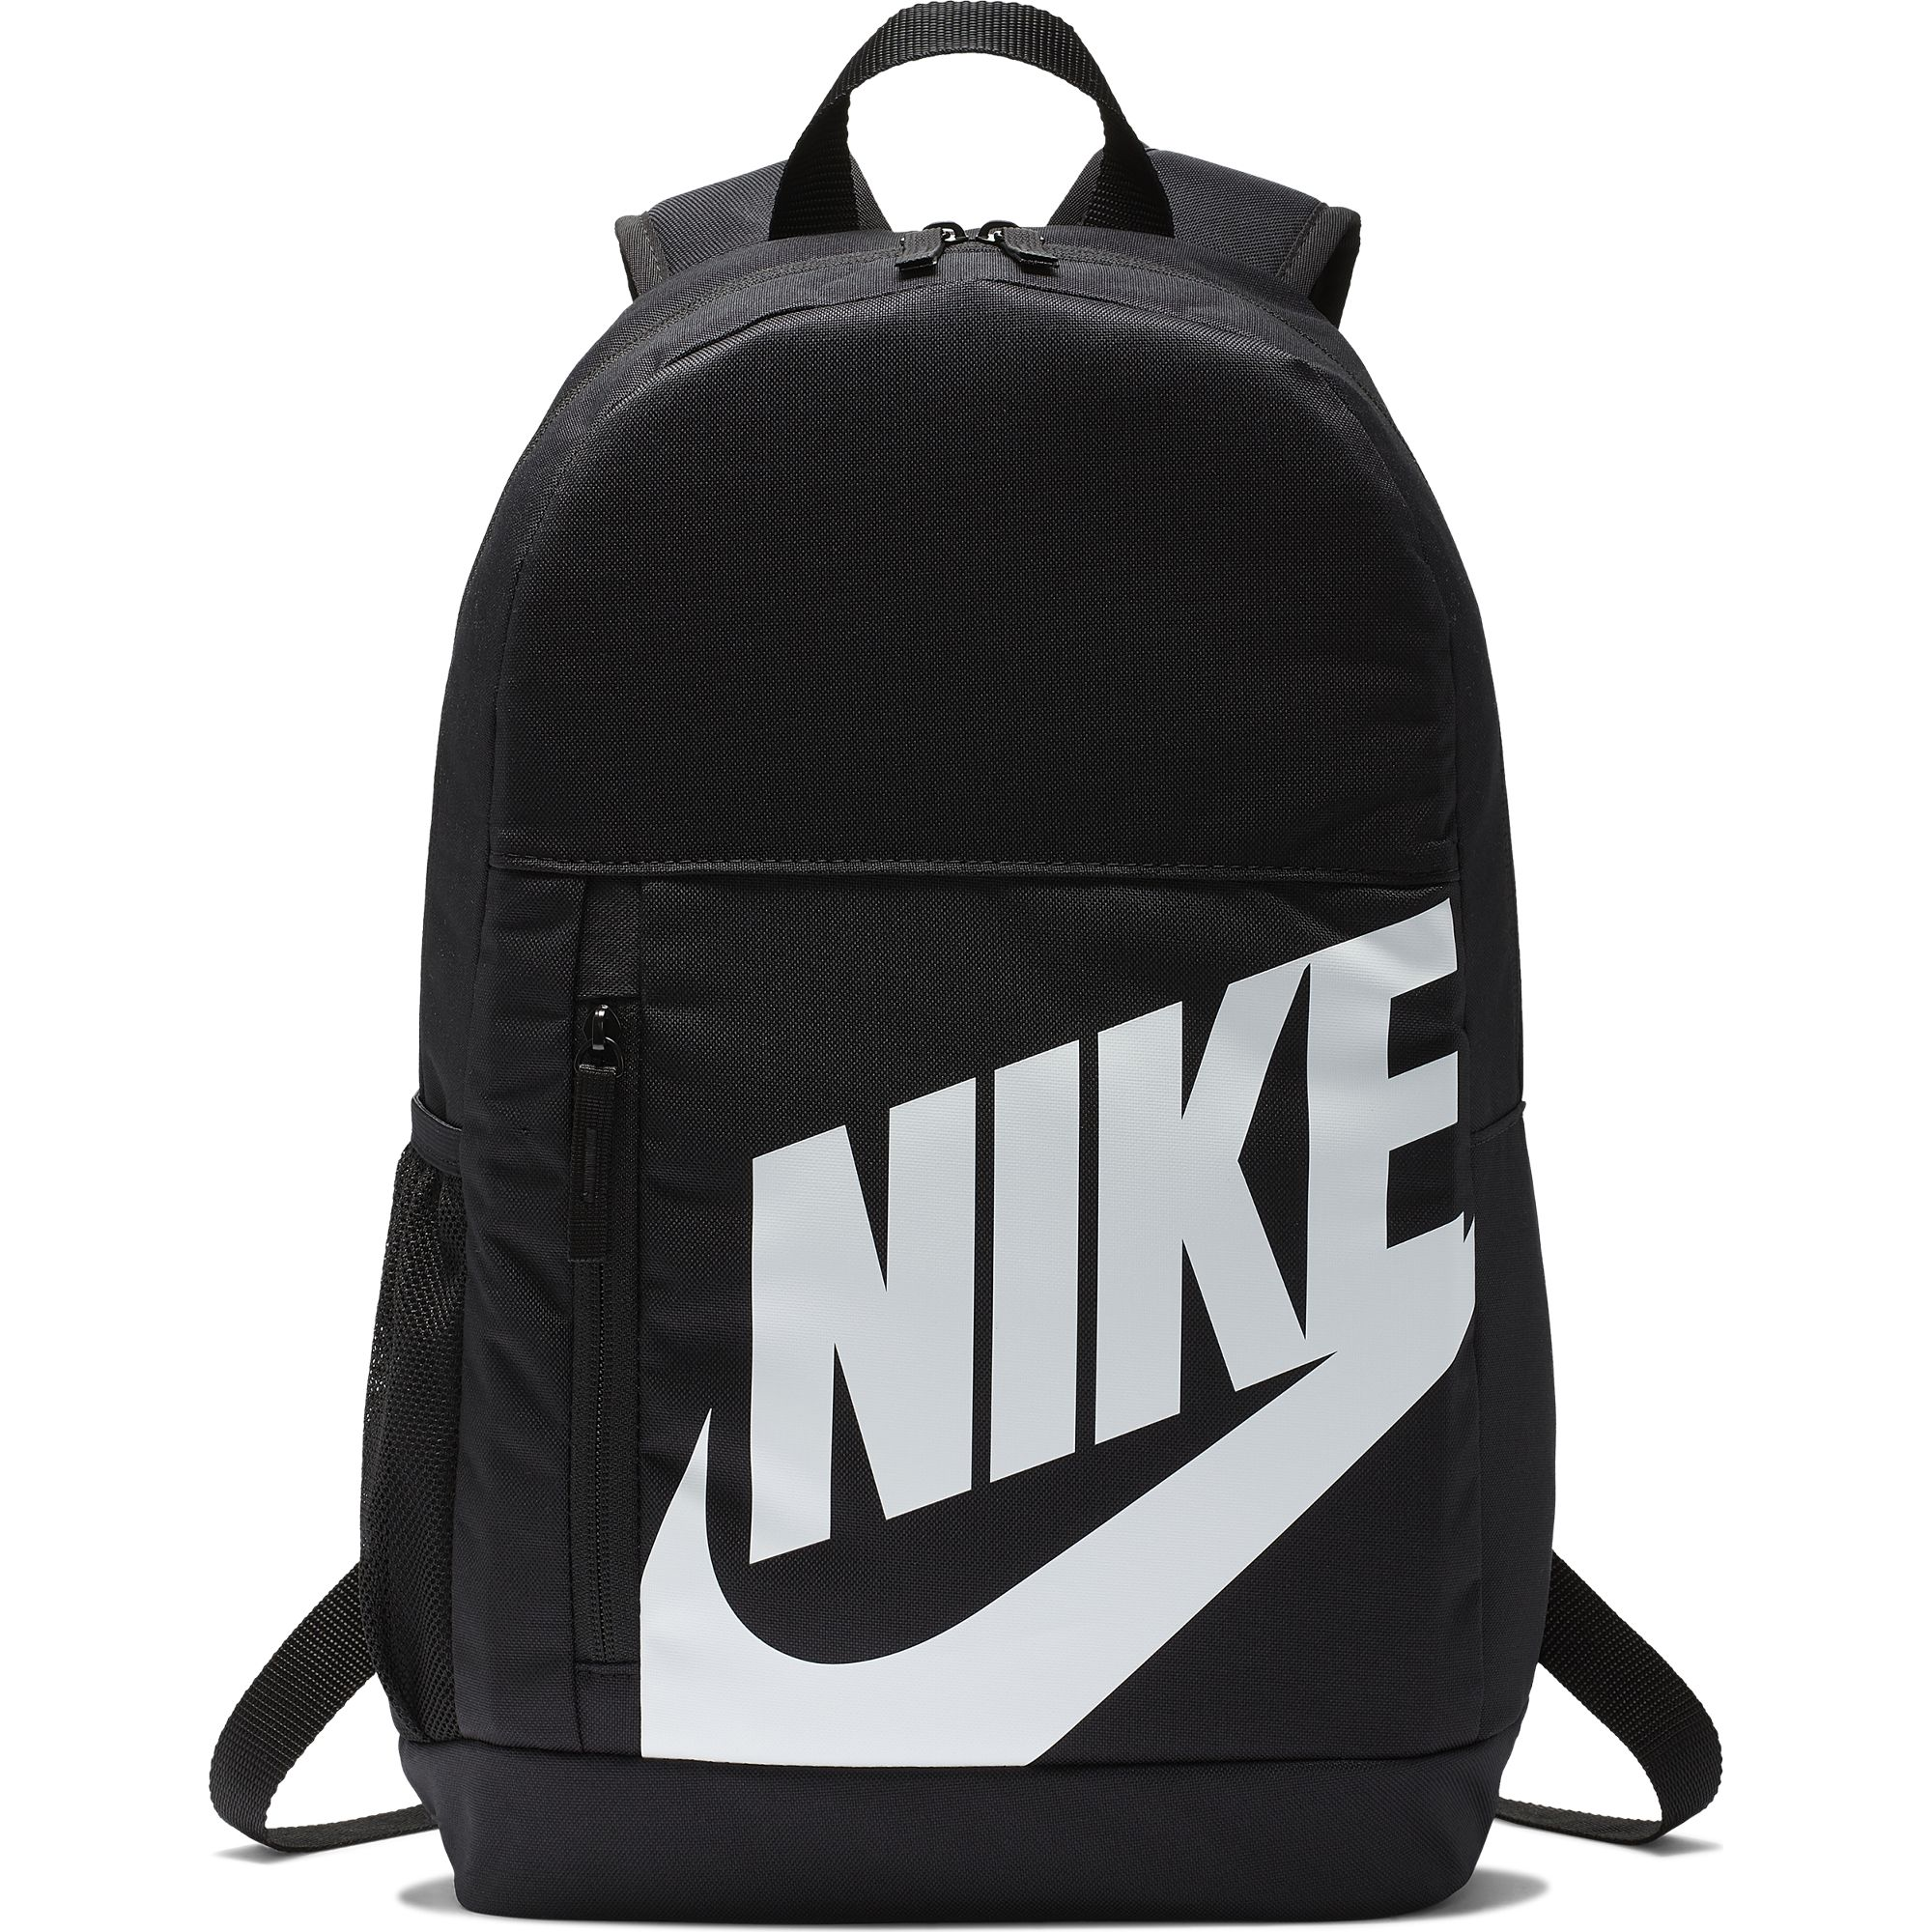 Details about Nike Elemental KIDS Unisex Backpack Rucksack School Football Training Sportswear